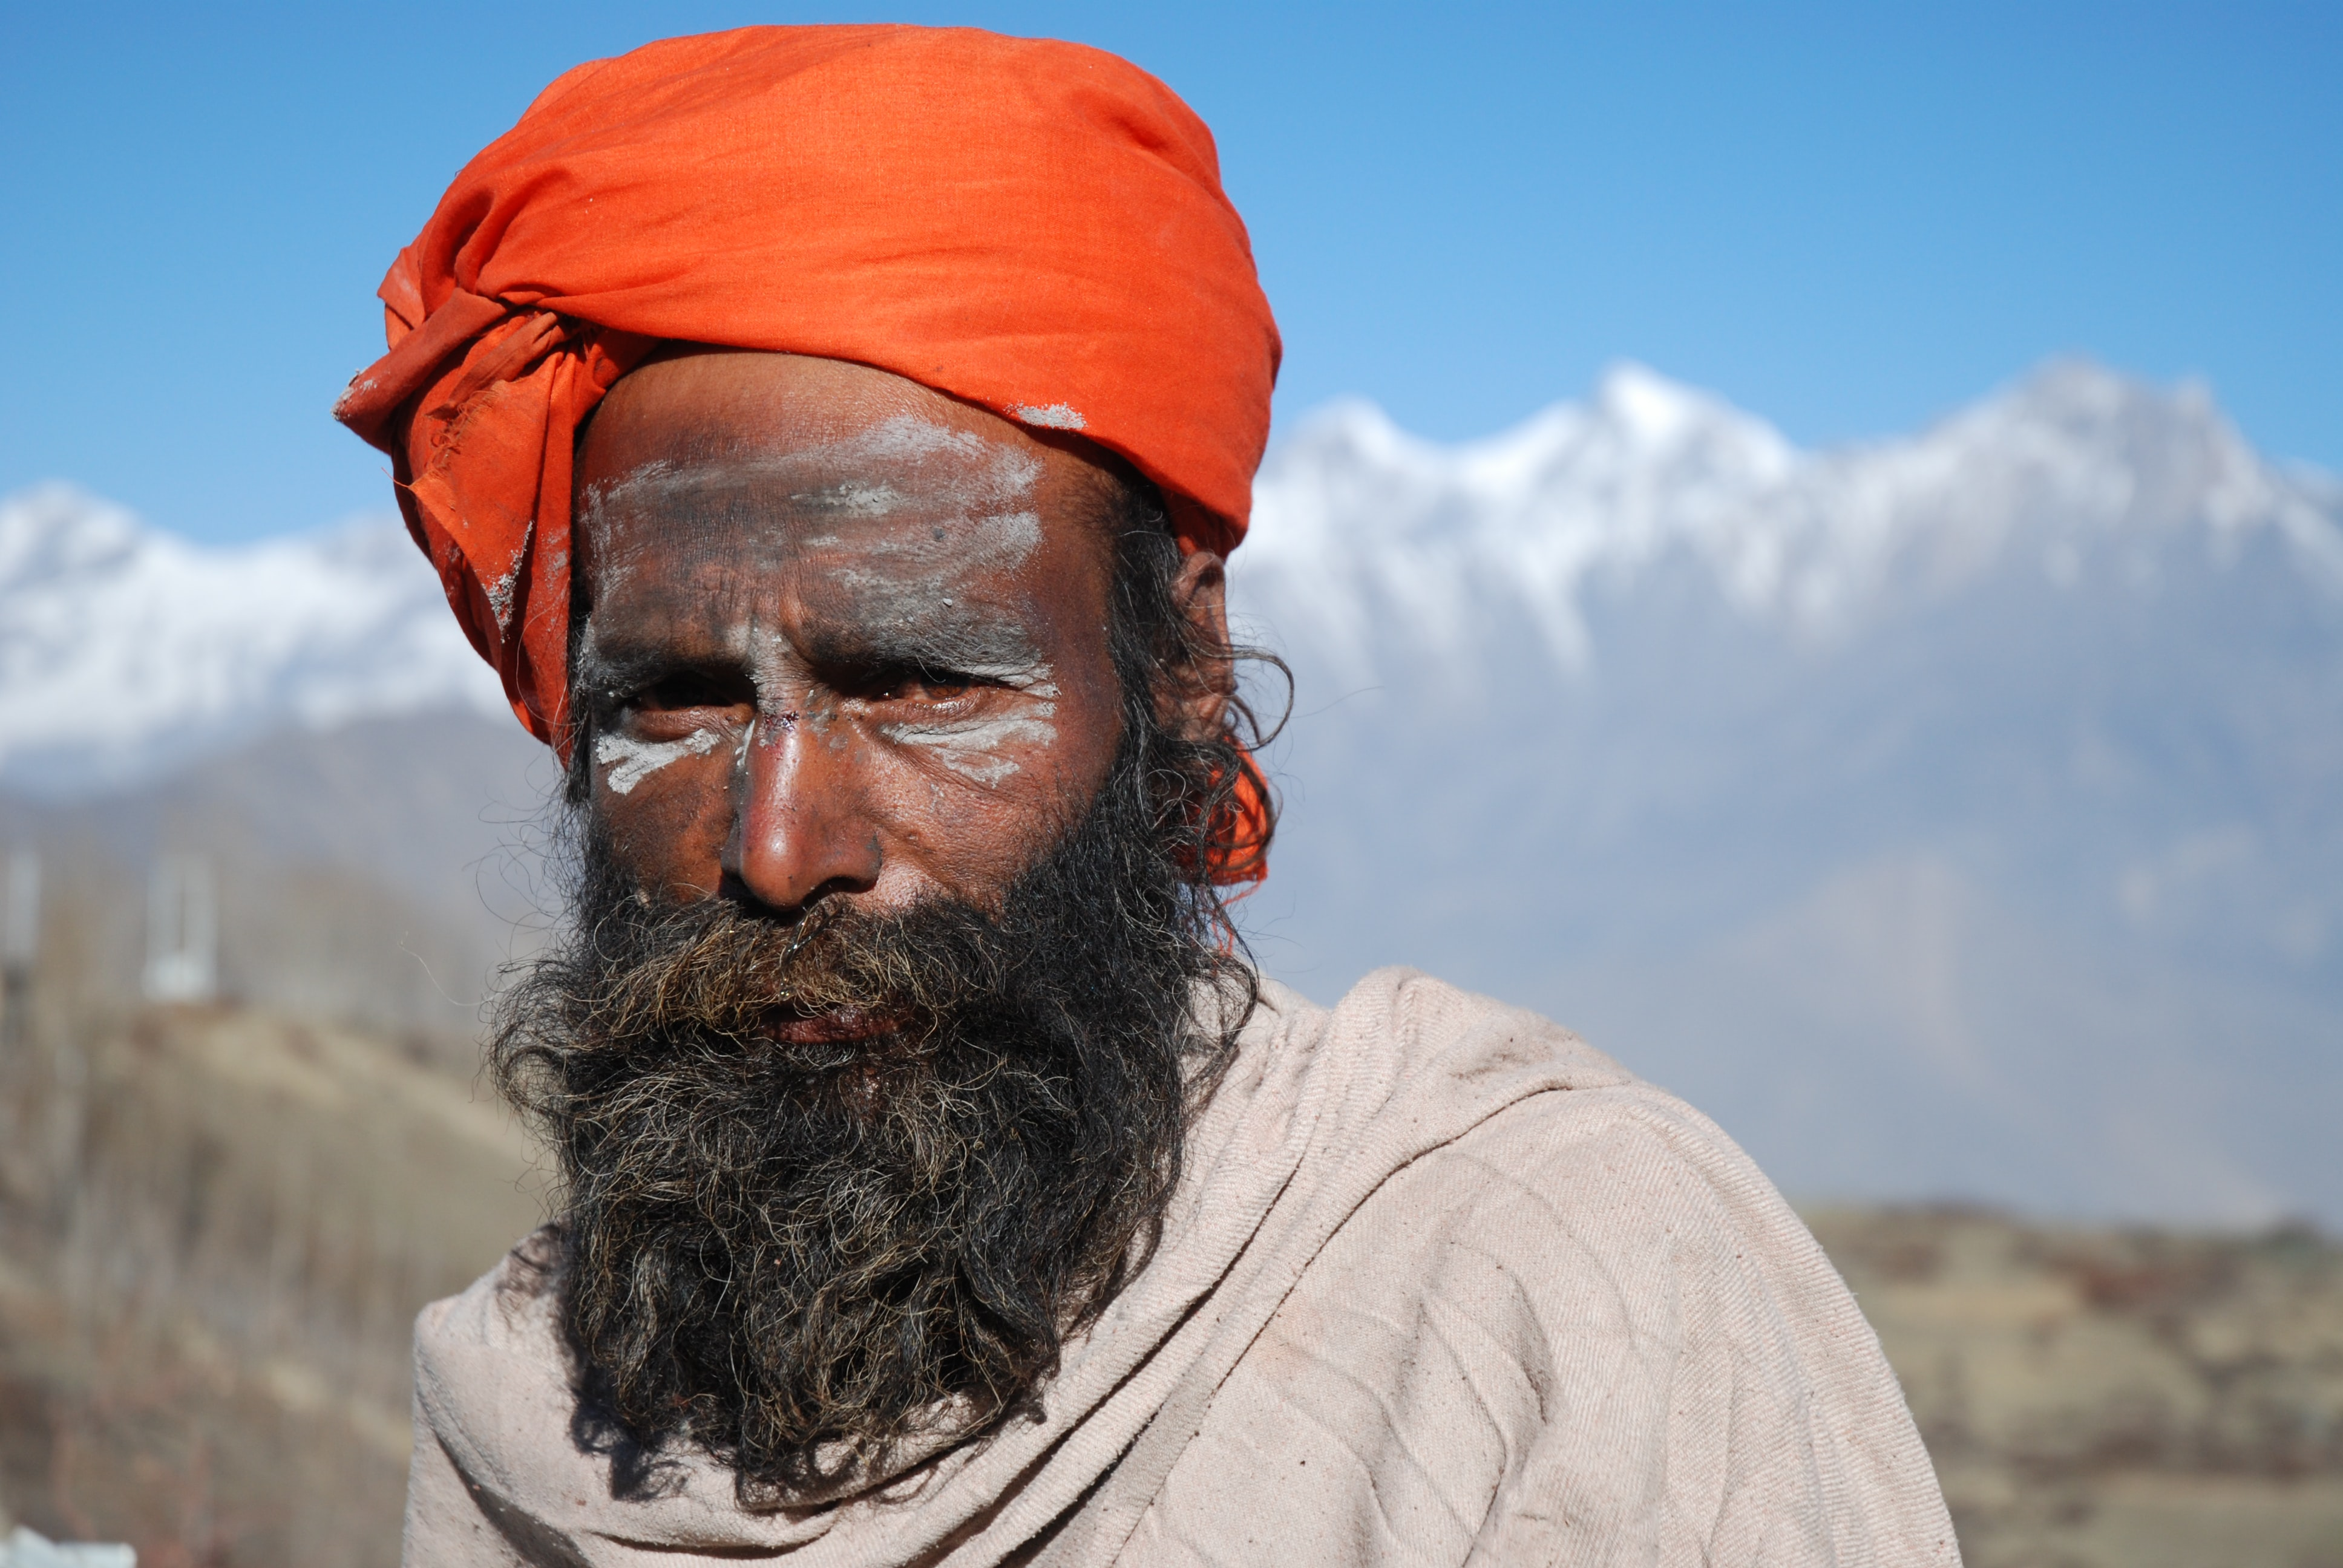 man wearing orange turban and gray top